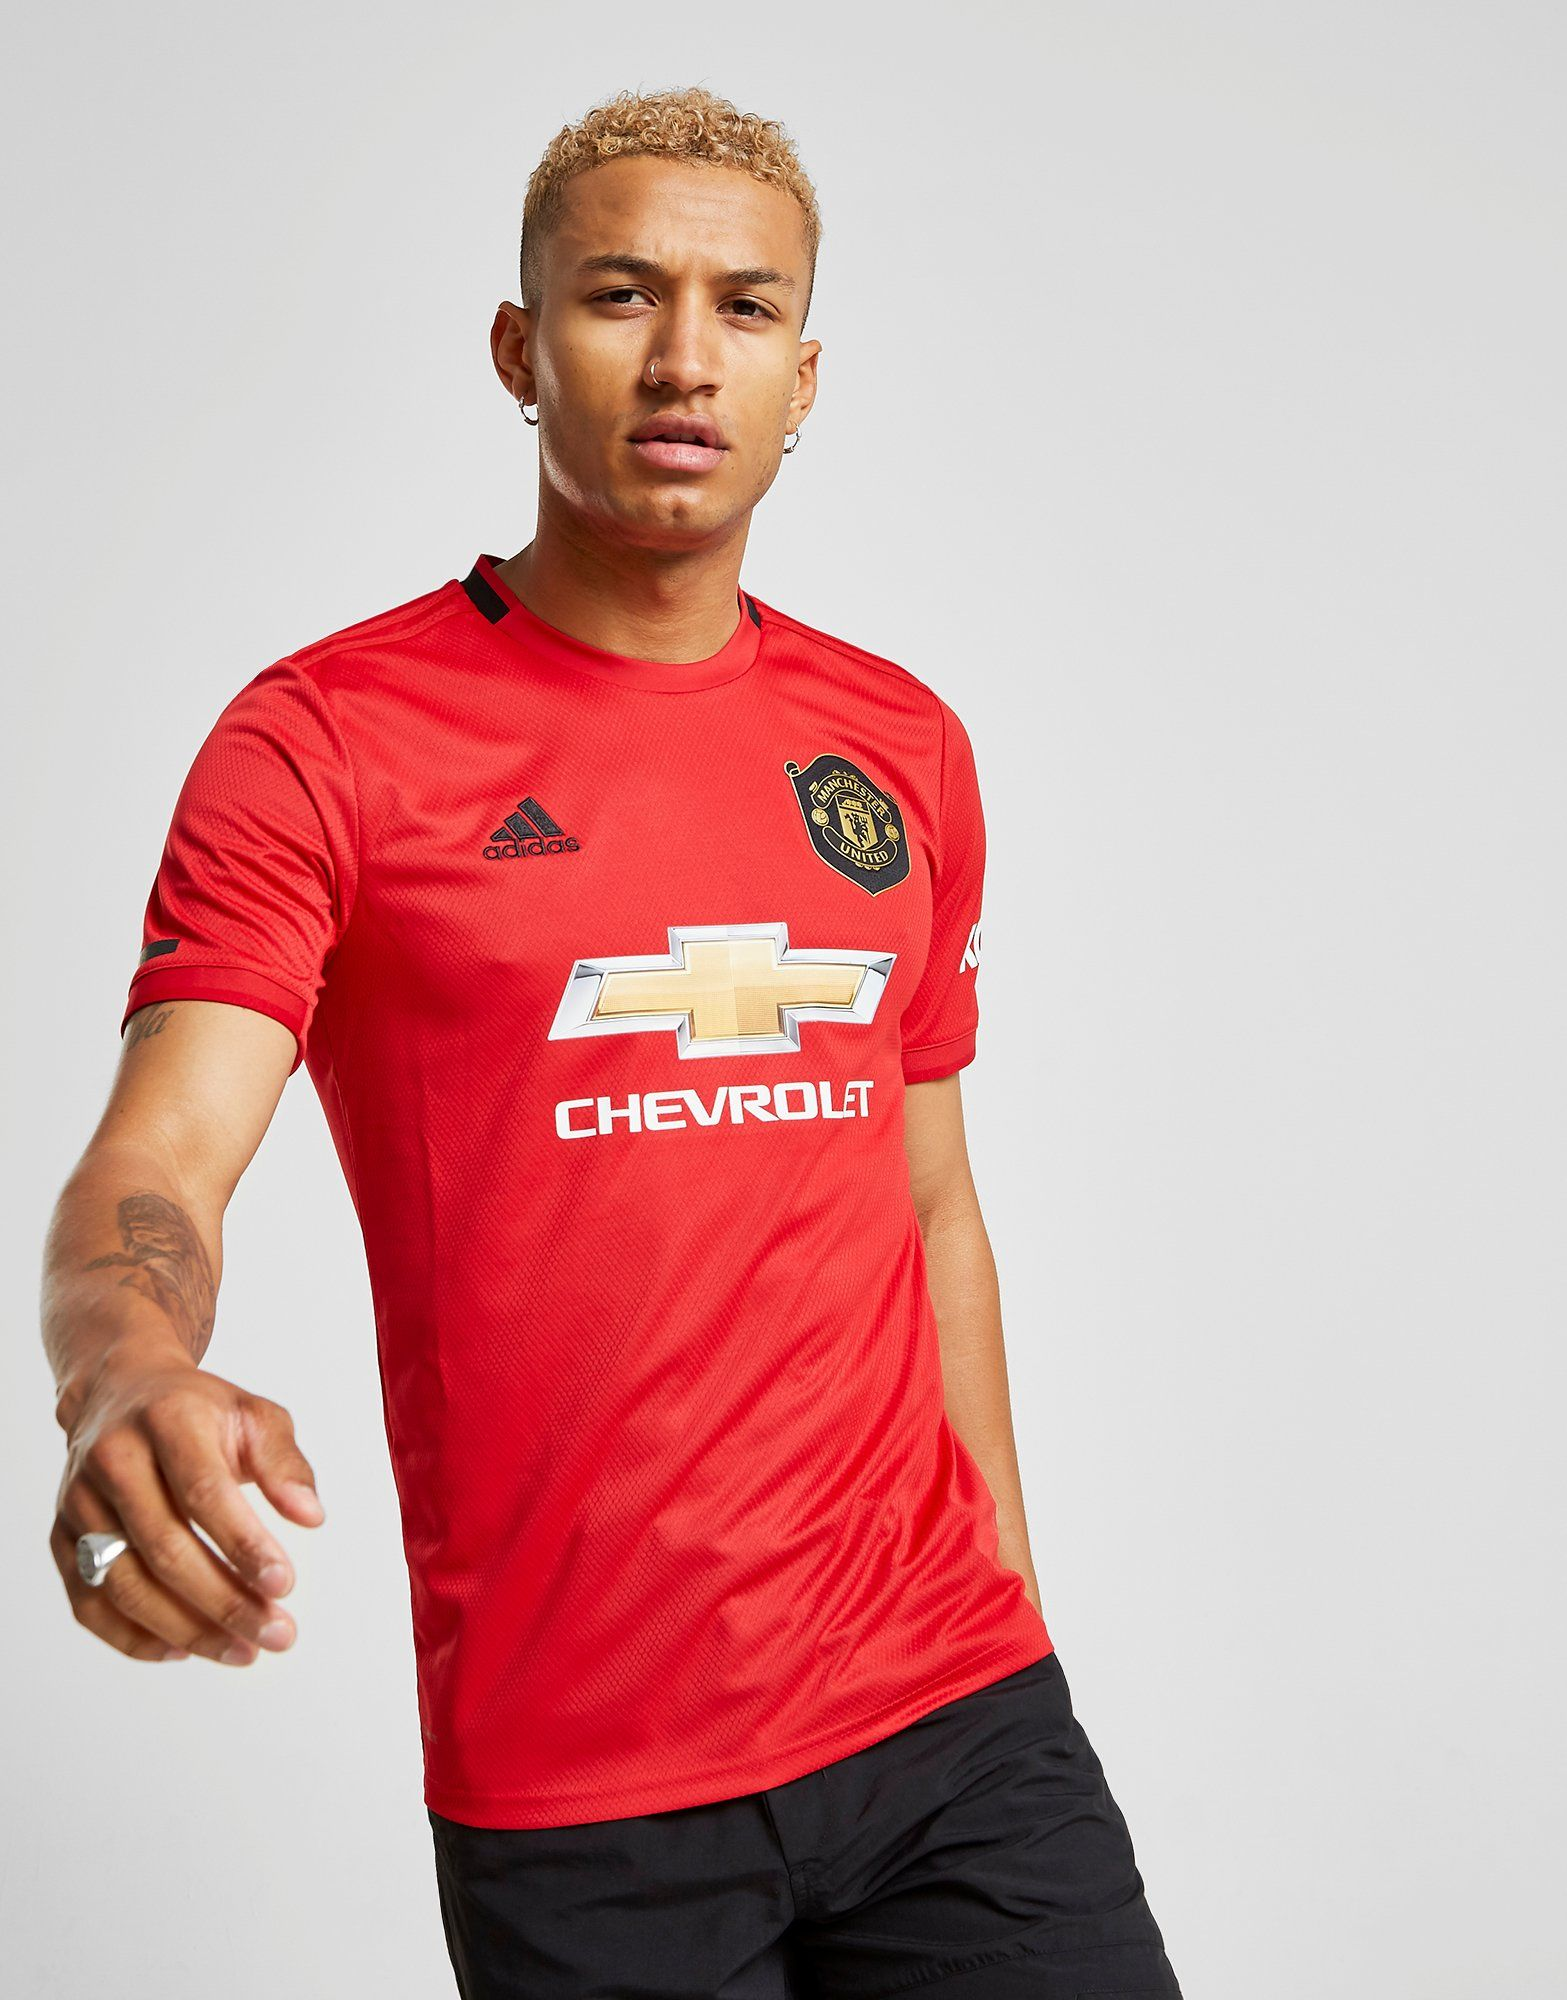 low priced 0e98d 54c63 adidas Manchester United FC 19/20 Home Shirt   JD Sports